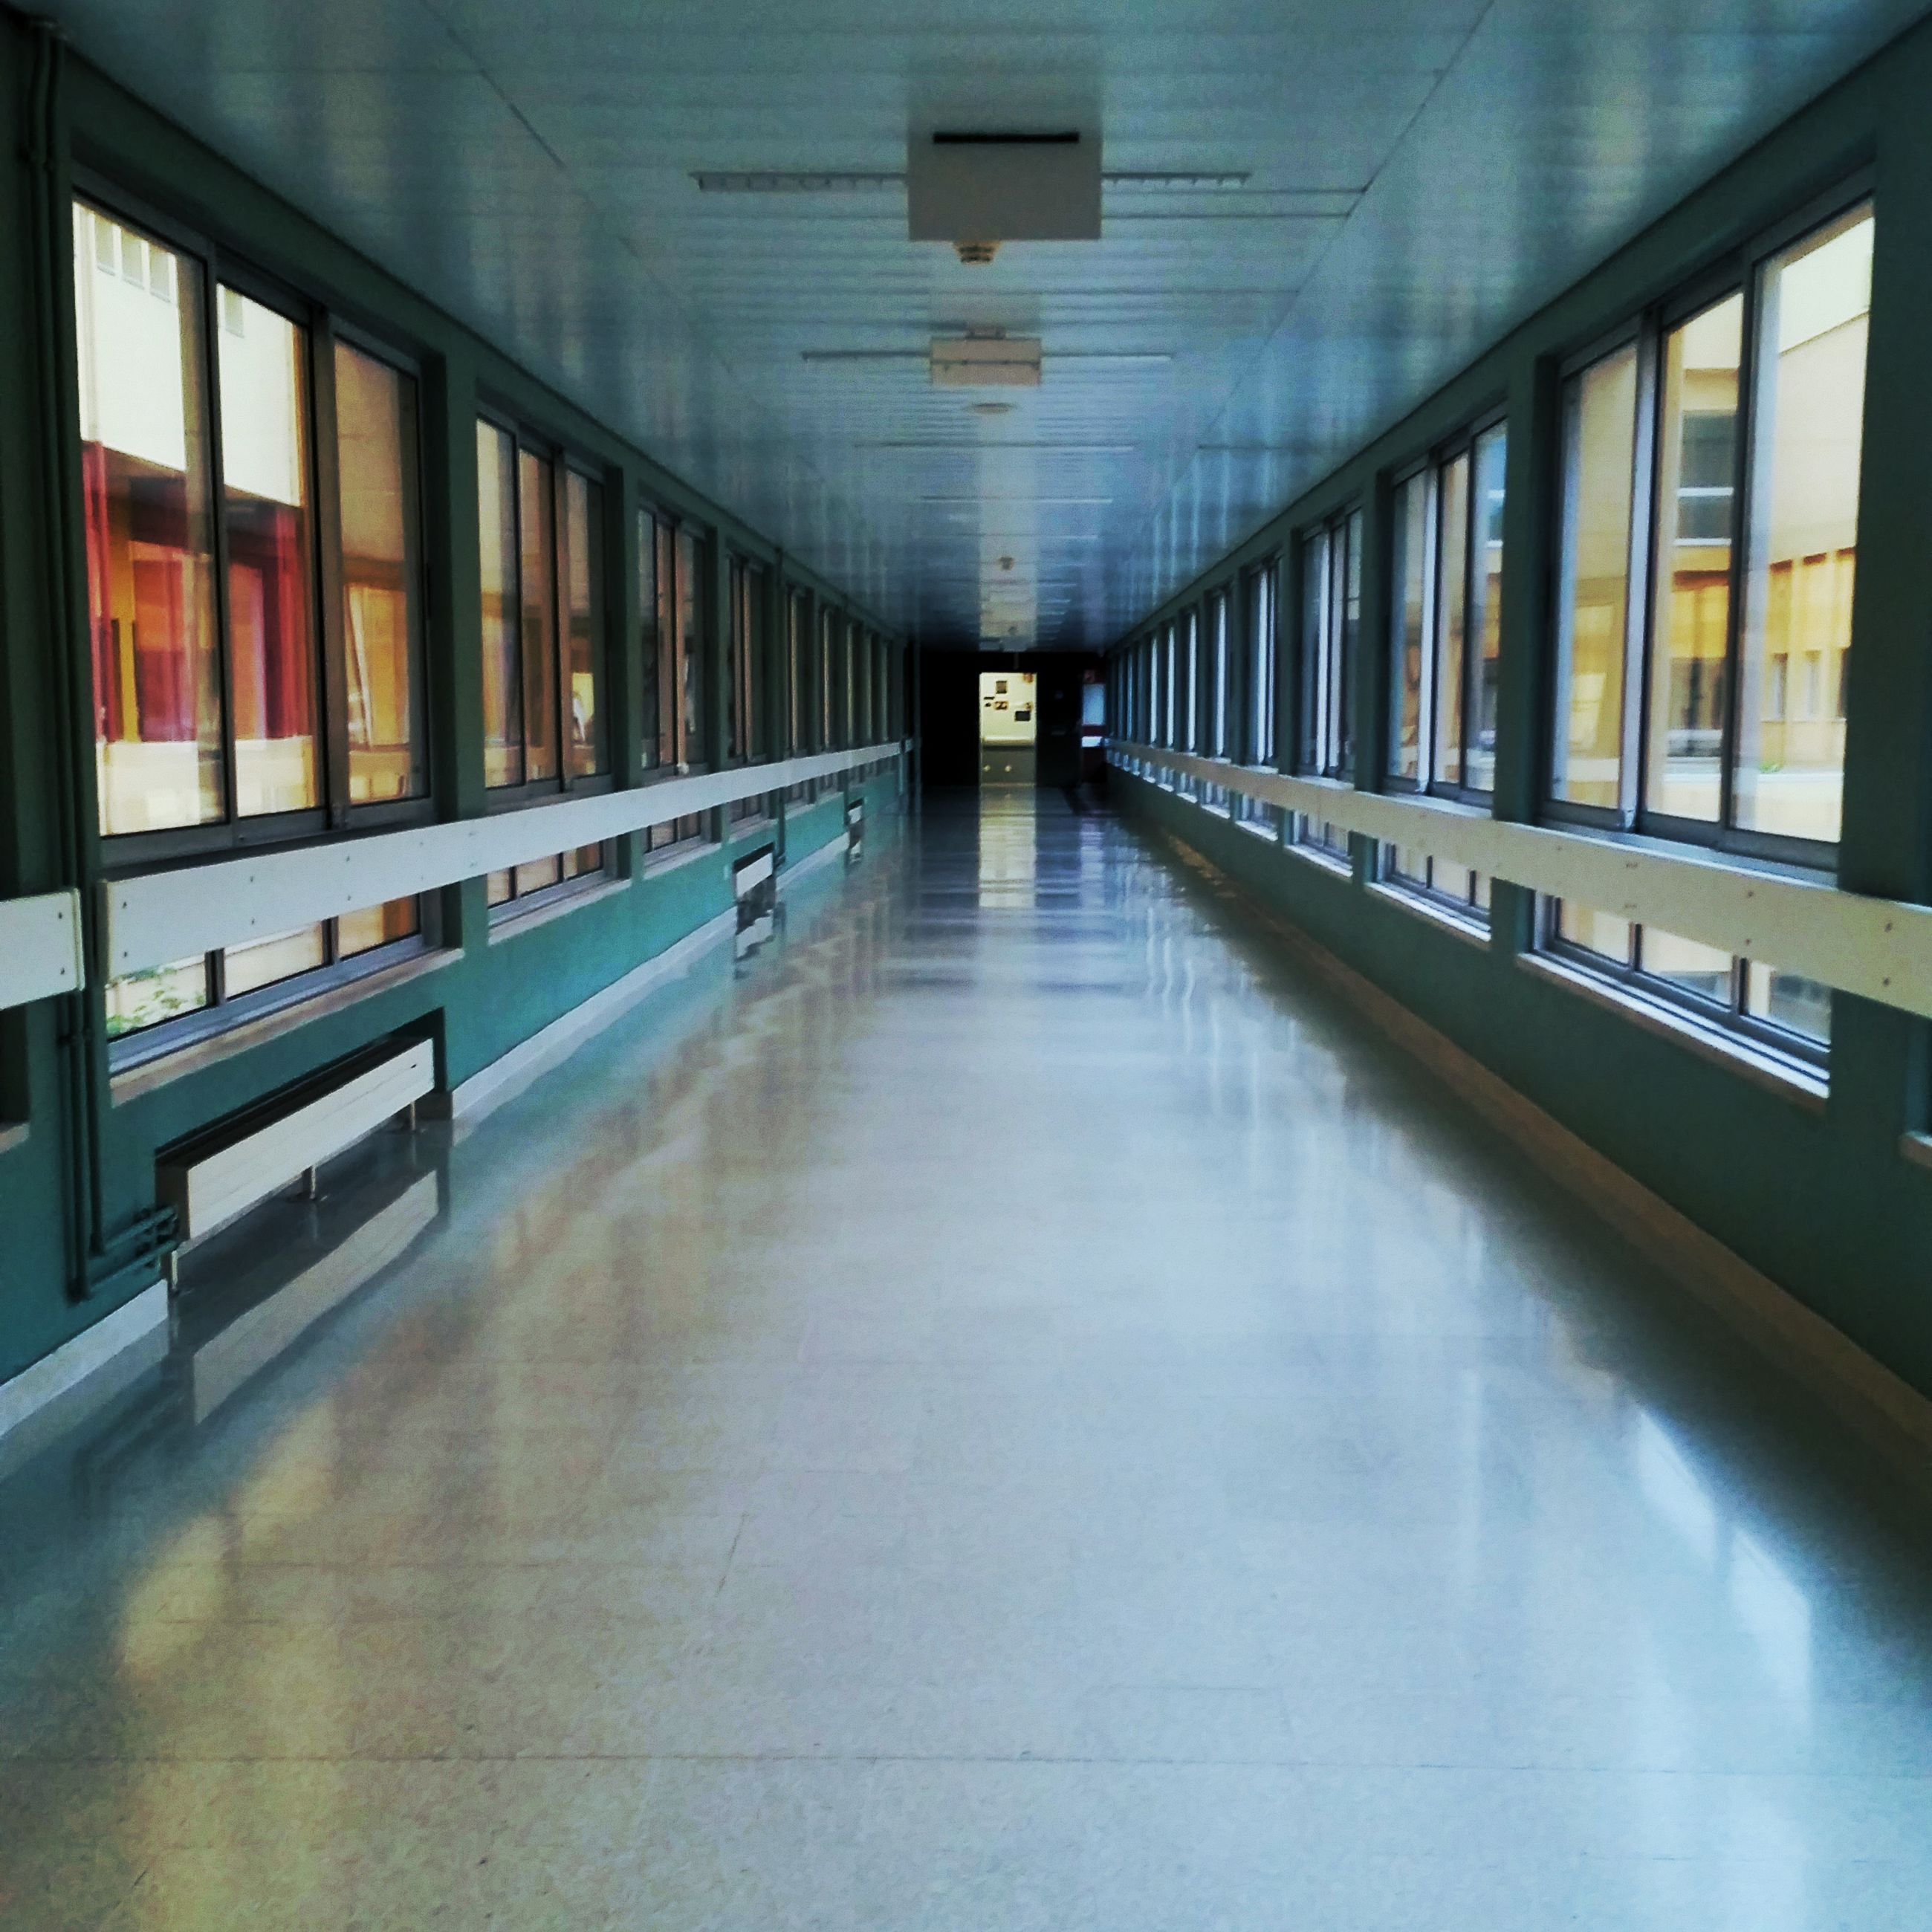 architecture, indoors, no people, empty, diminishing perspective, direction, education, flooring, the way forward, building, arcade, absence, corridor, built structure, illuminated, day, ceiling, reflection, in a row, long